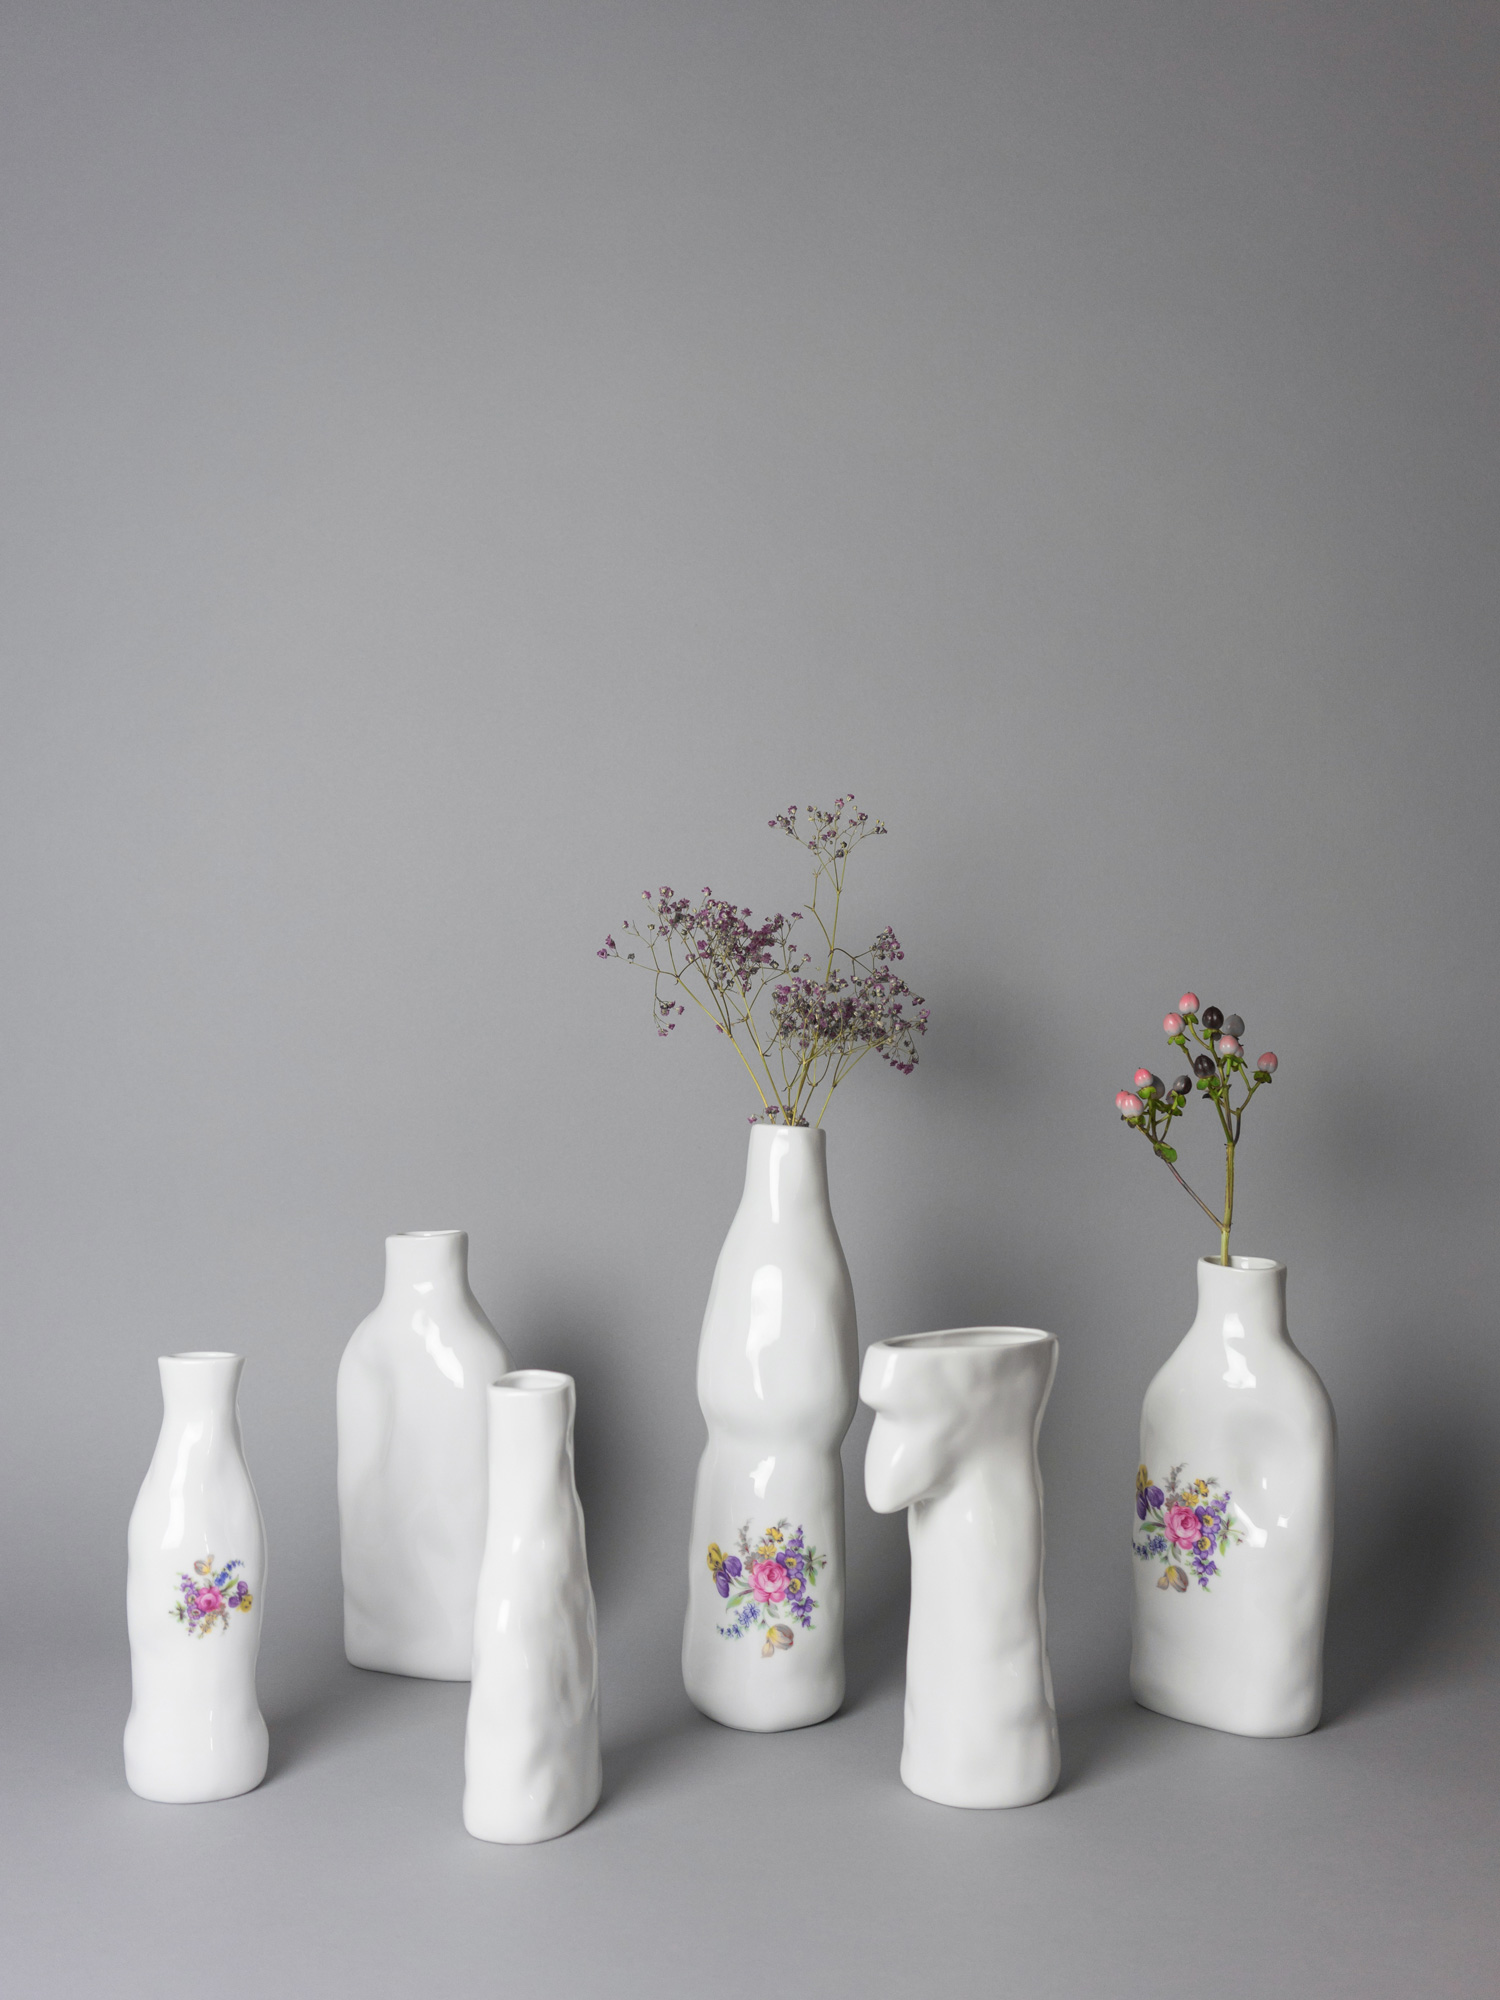 Porcelain abstract vases with flower pattern by Qubus design studio